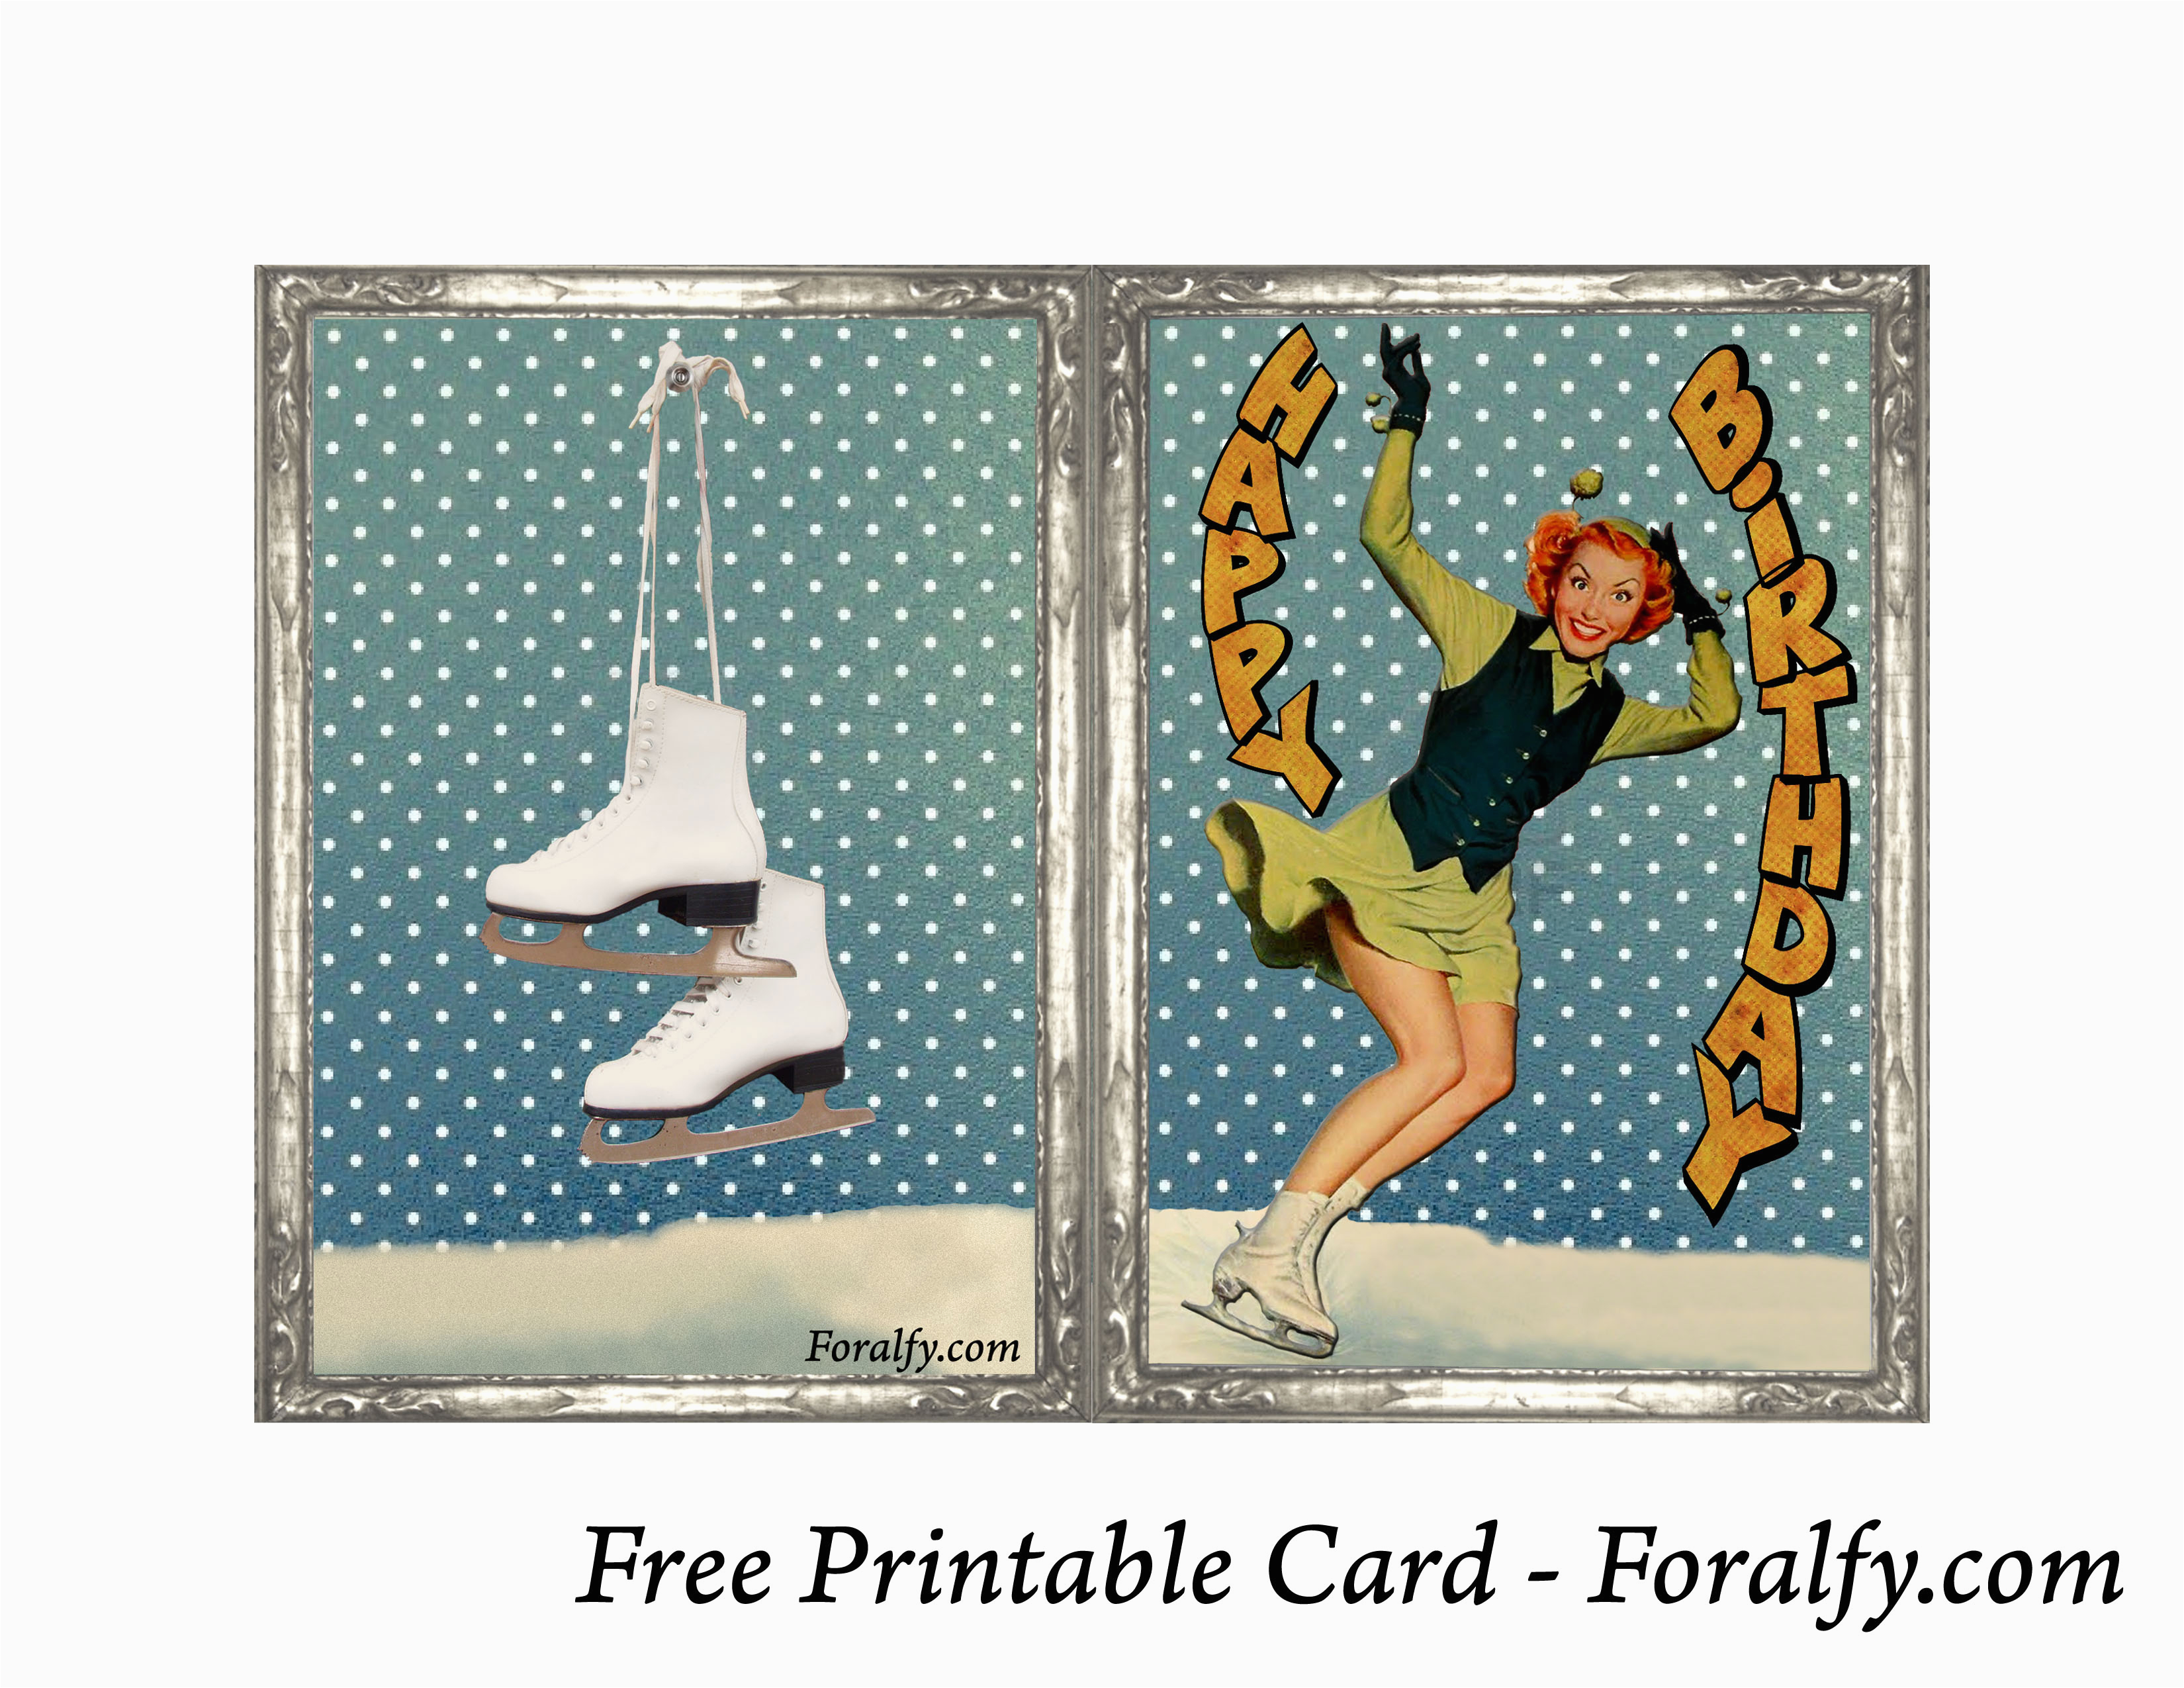 foralfy figure skating happy birthday card and envelope